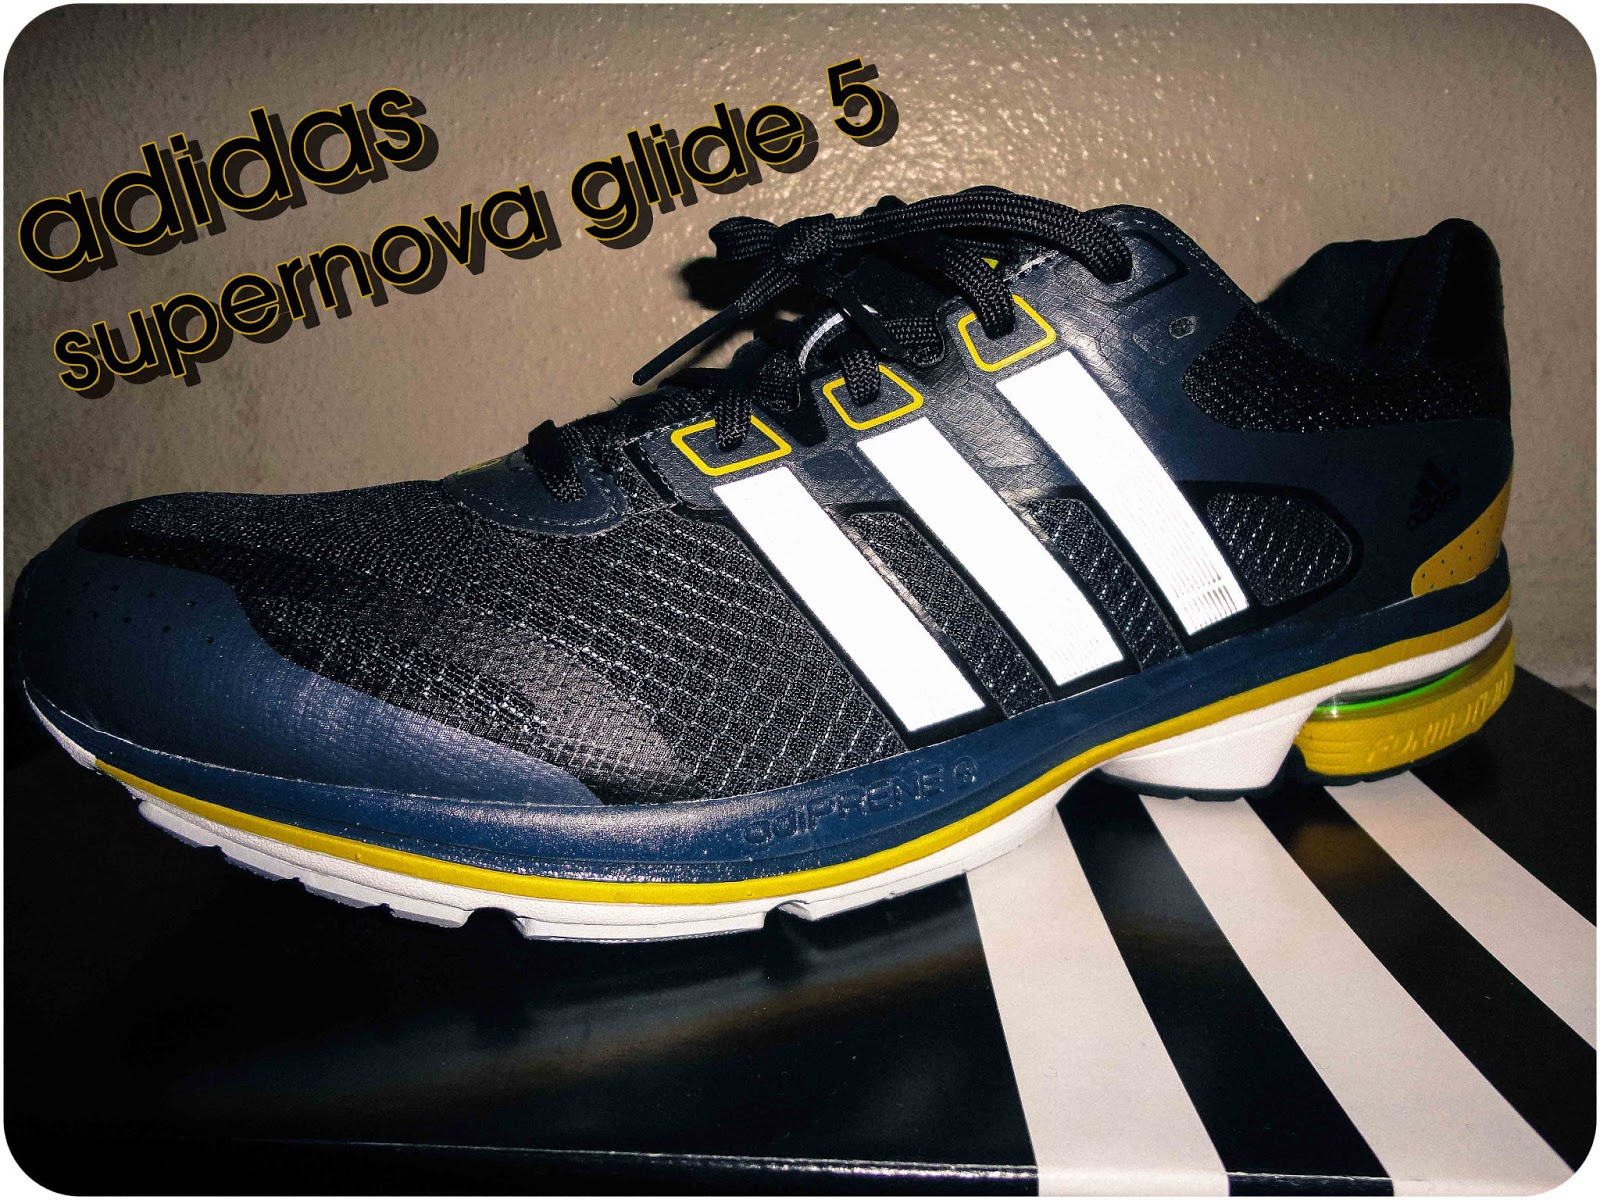 Filippo Running and Much More: Adidas Supernova Glide 4